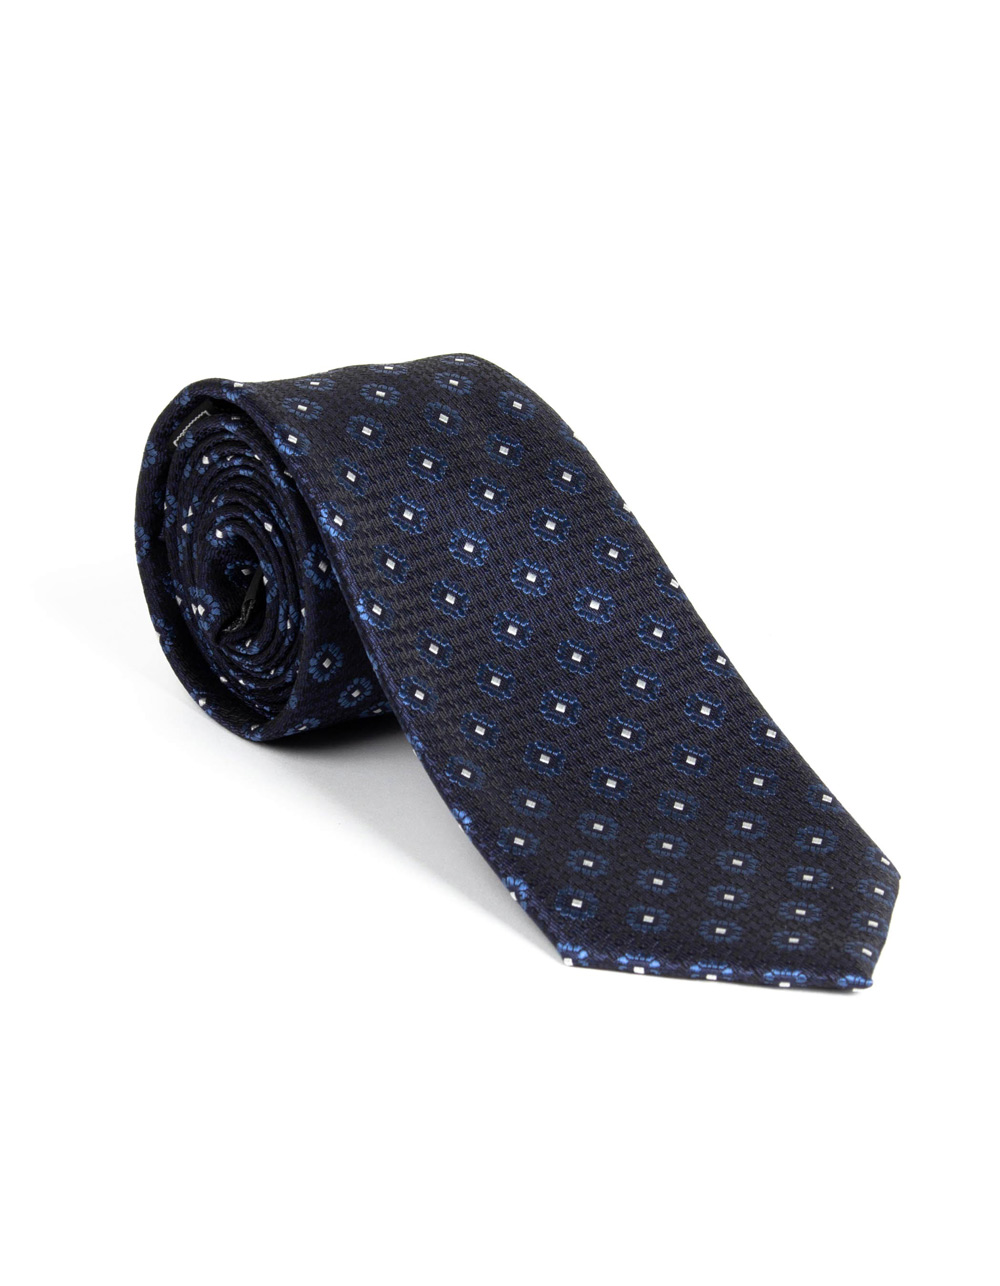 Dark Navy tie with pattern